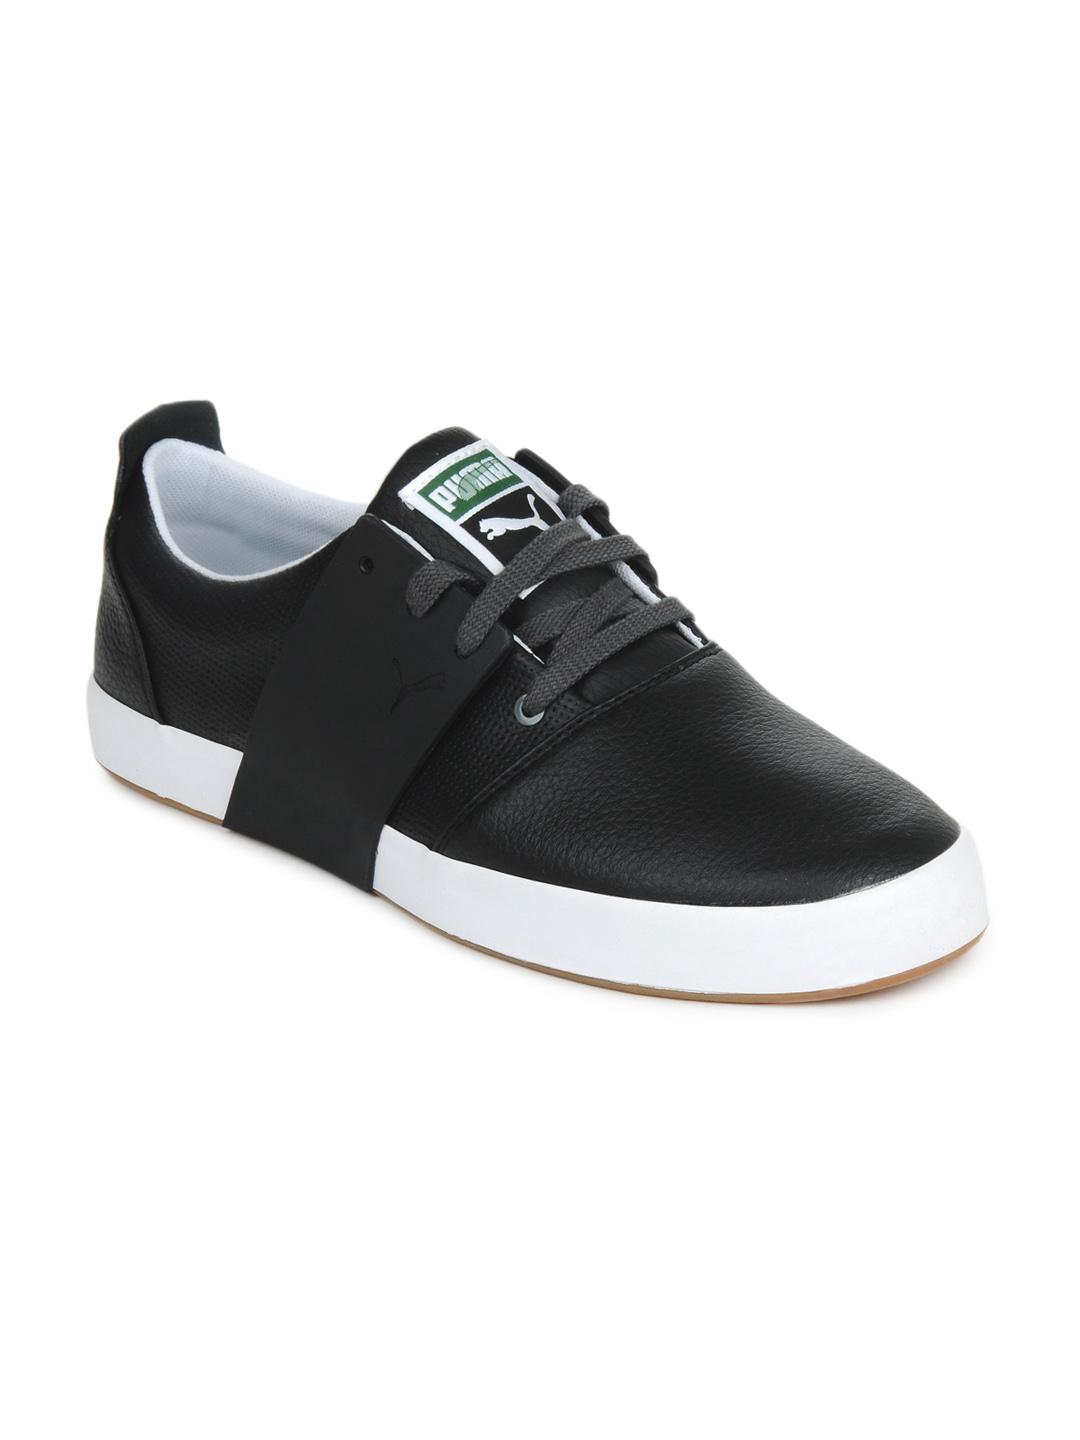 Men sneakers free shipping 2013 new arrival sneakers for men